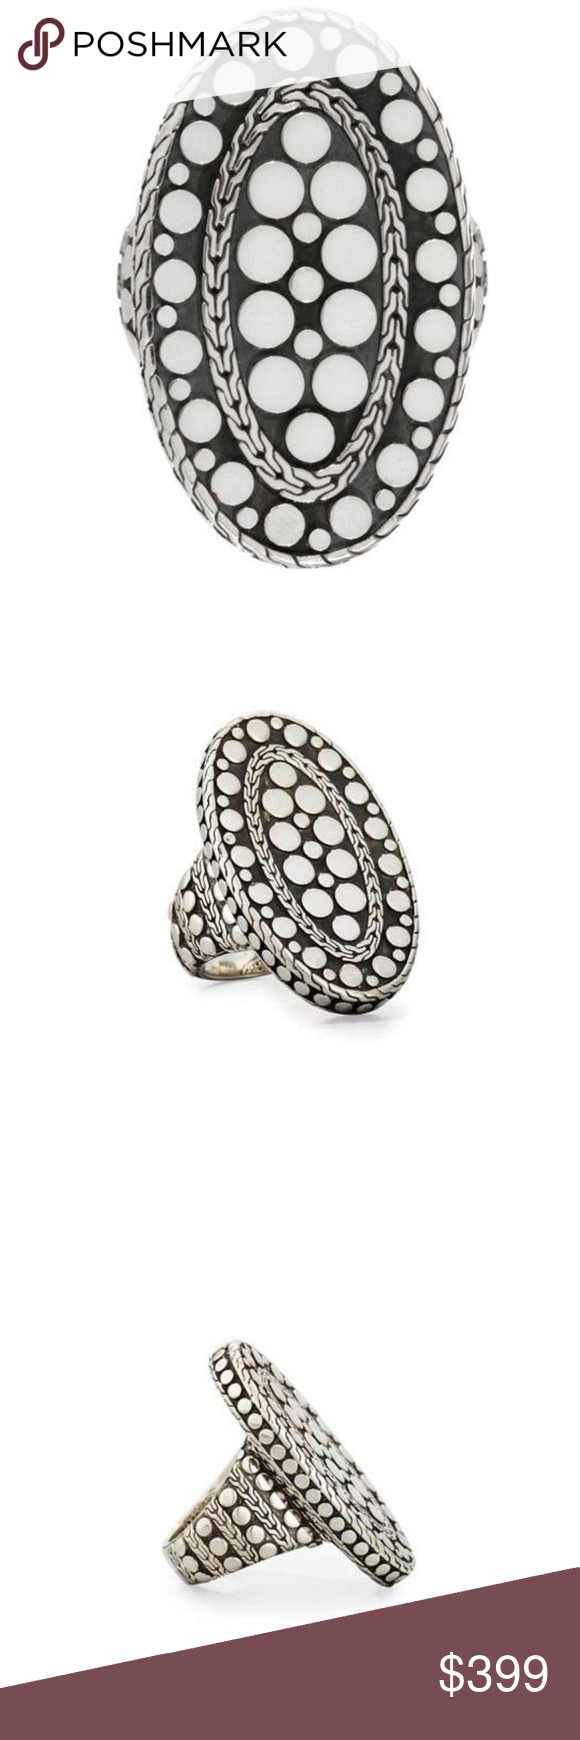 John Hardy Oval Dot Ring, Size 7